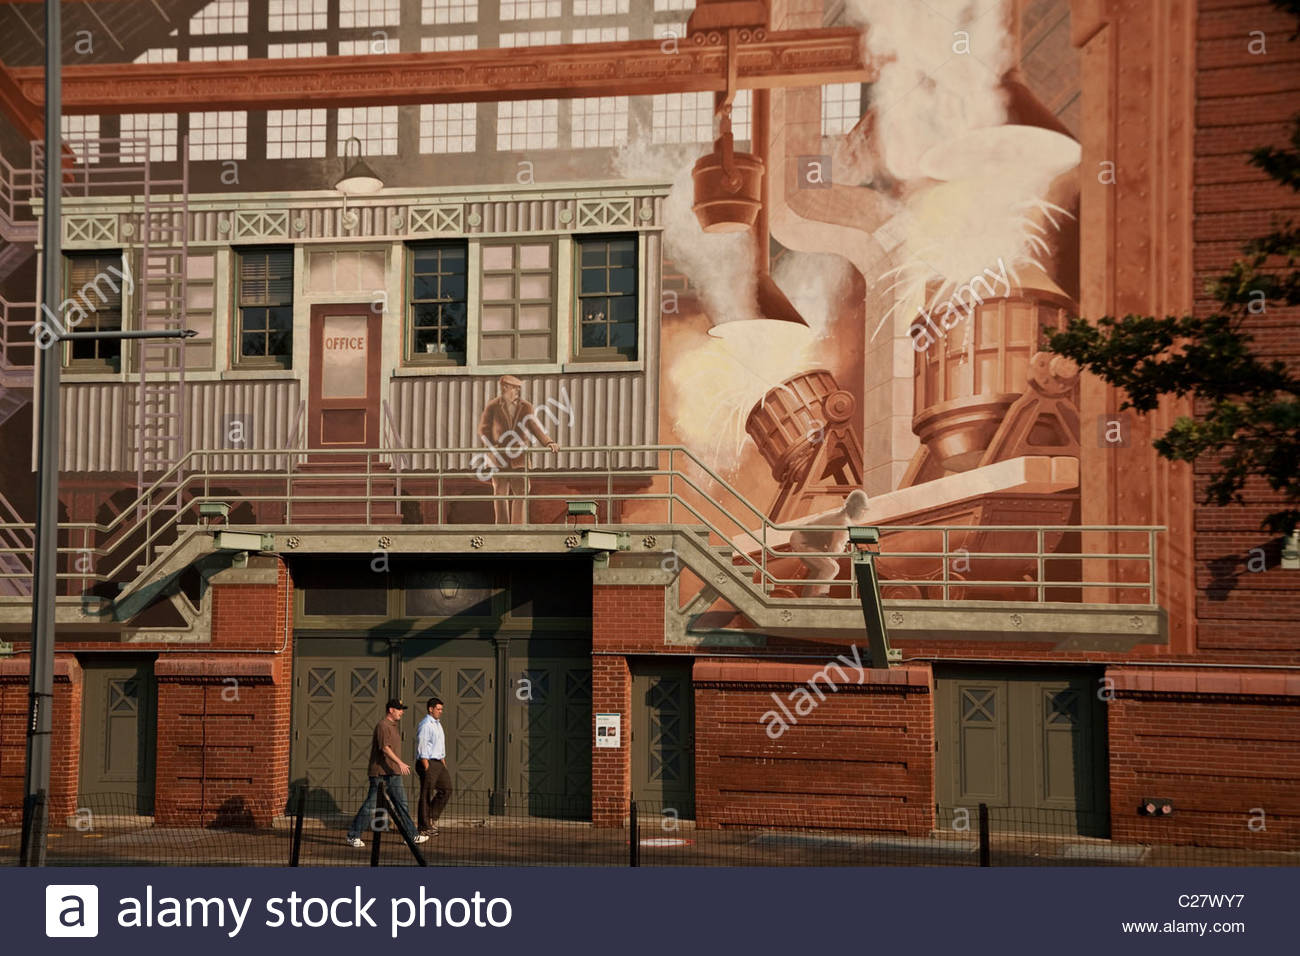 A mural painted on a brick building in the downtown business district. - Stock Image